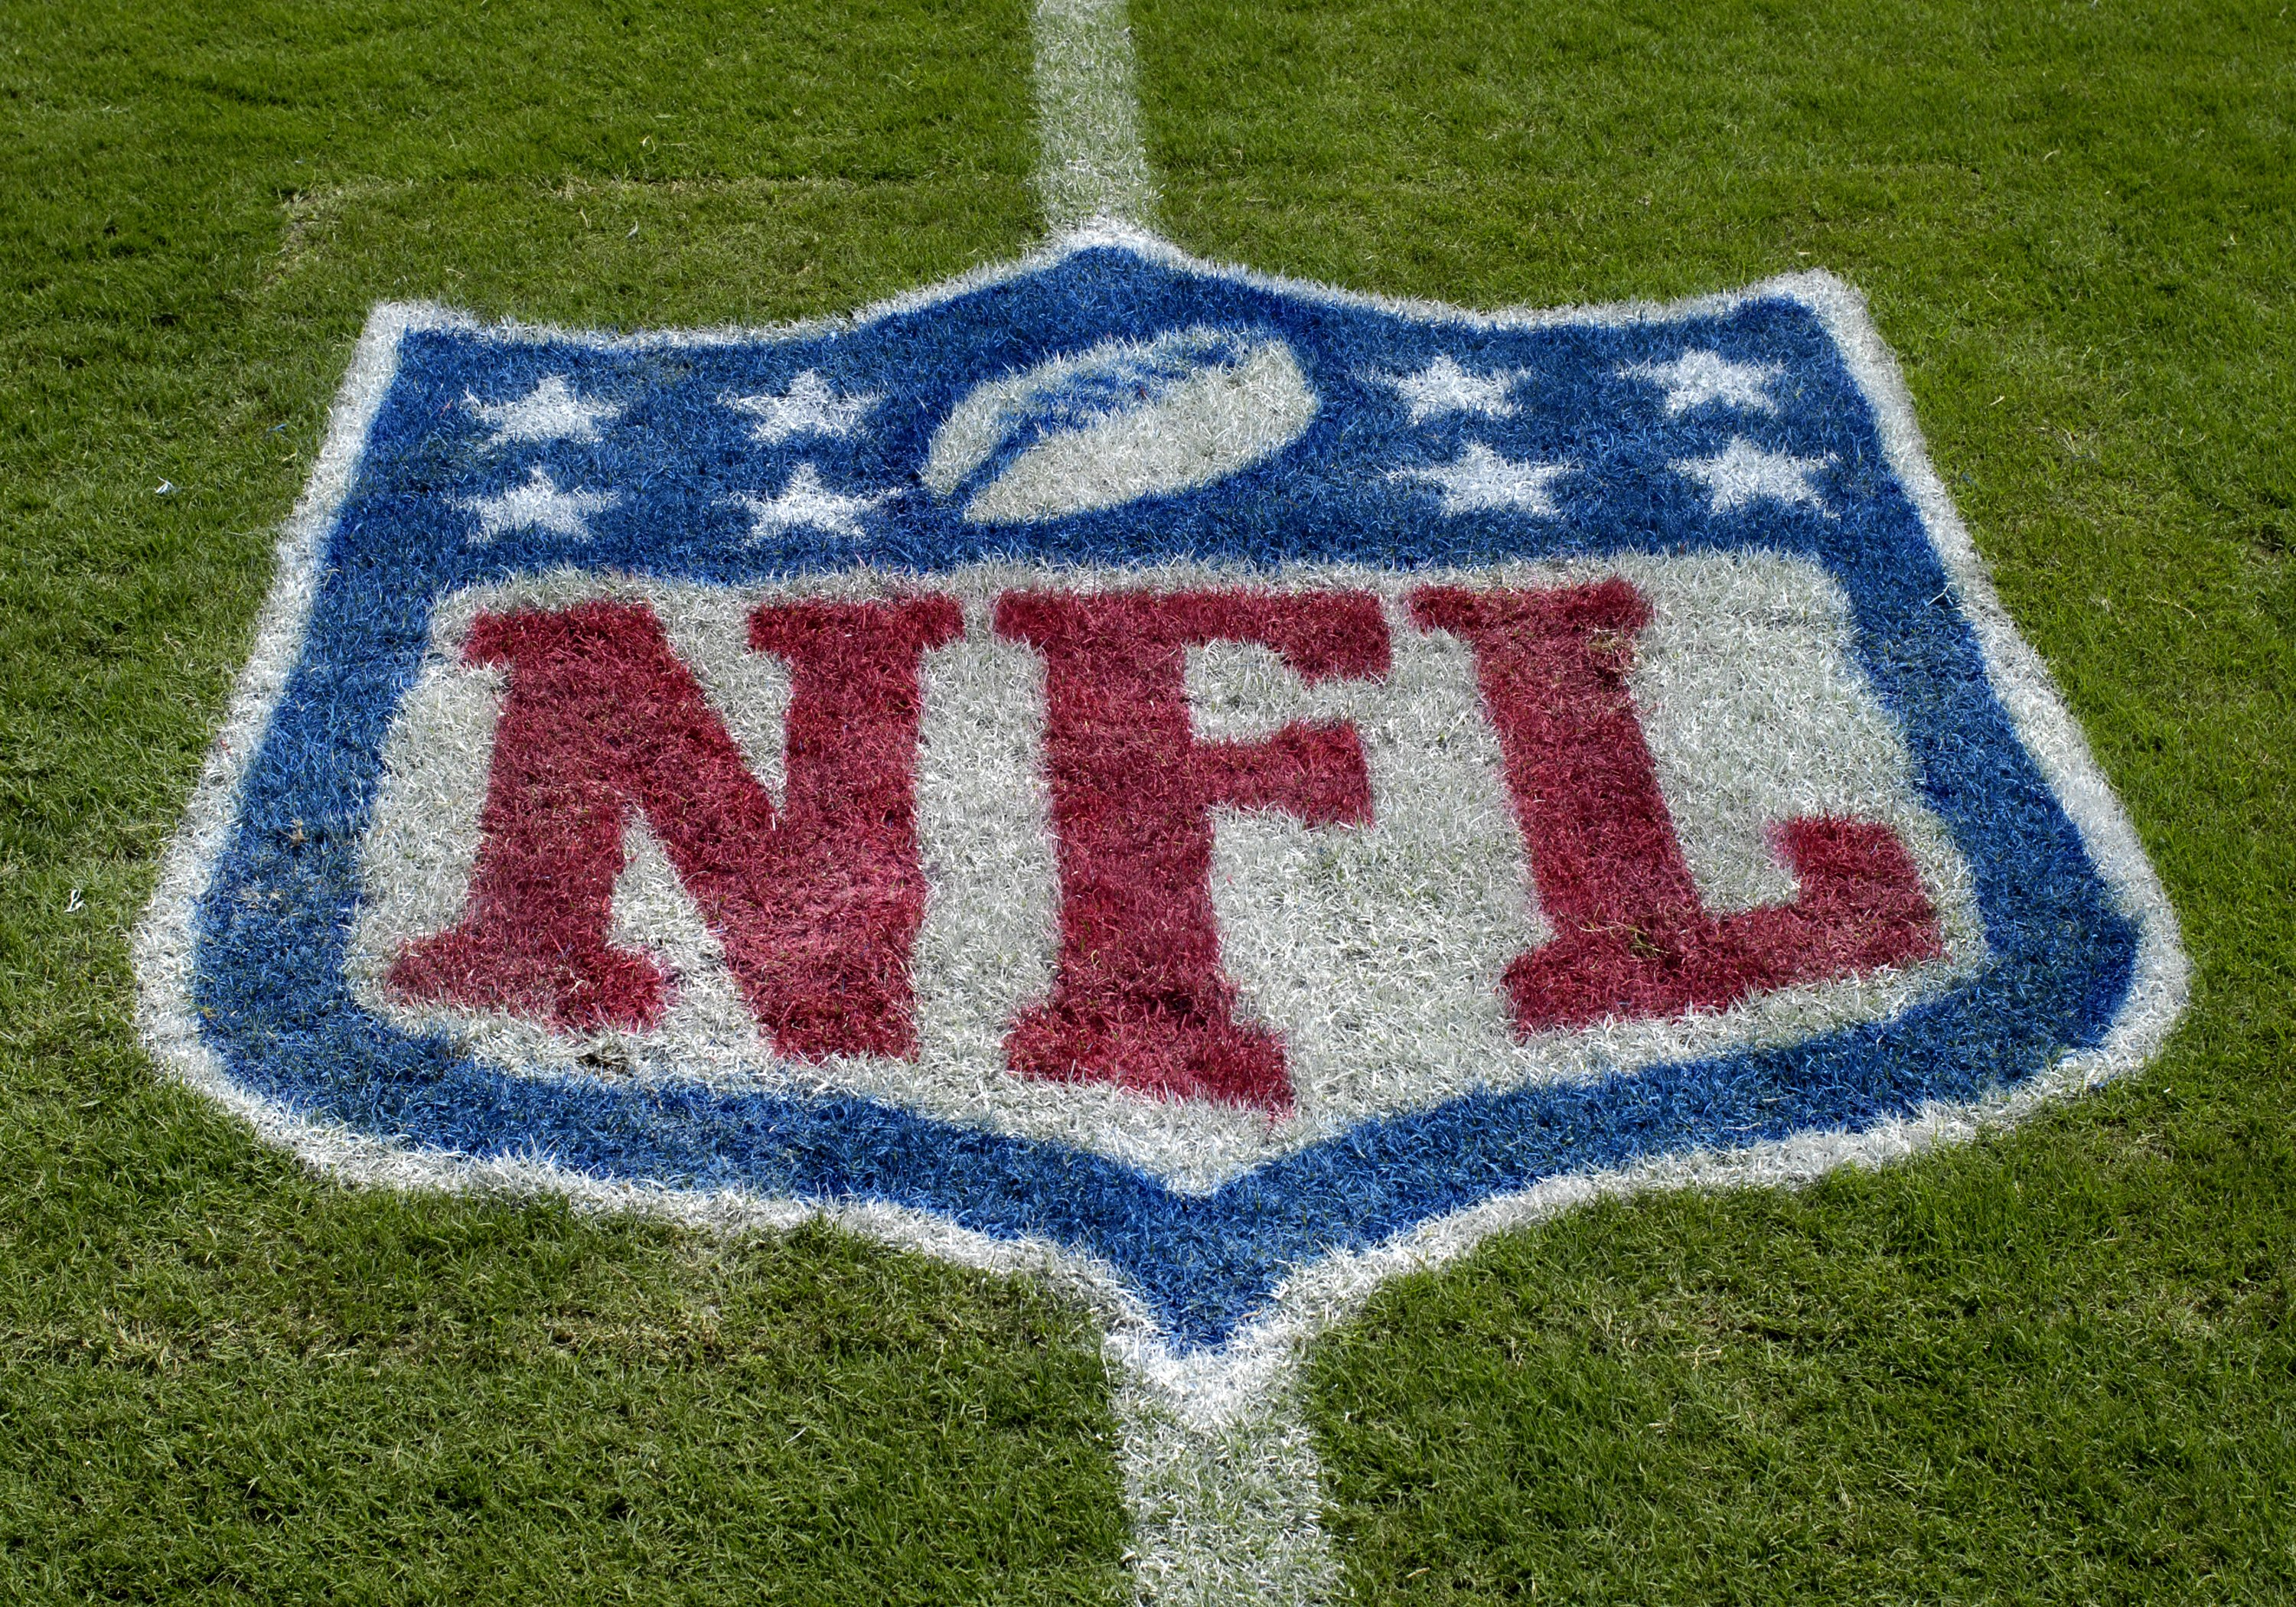 NFL Blog - Week 3 NFL Game Picks